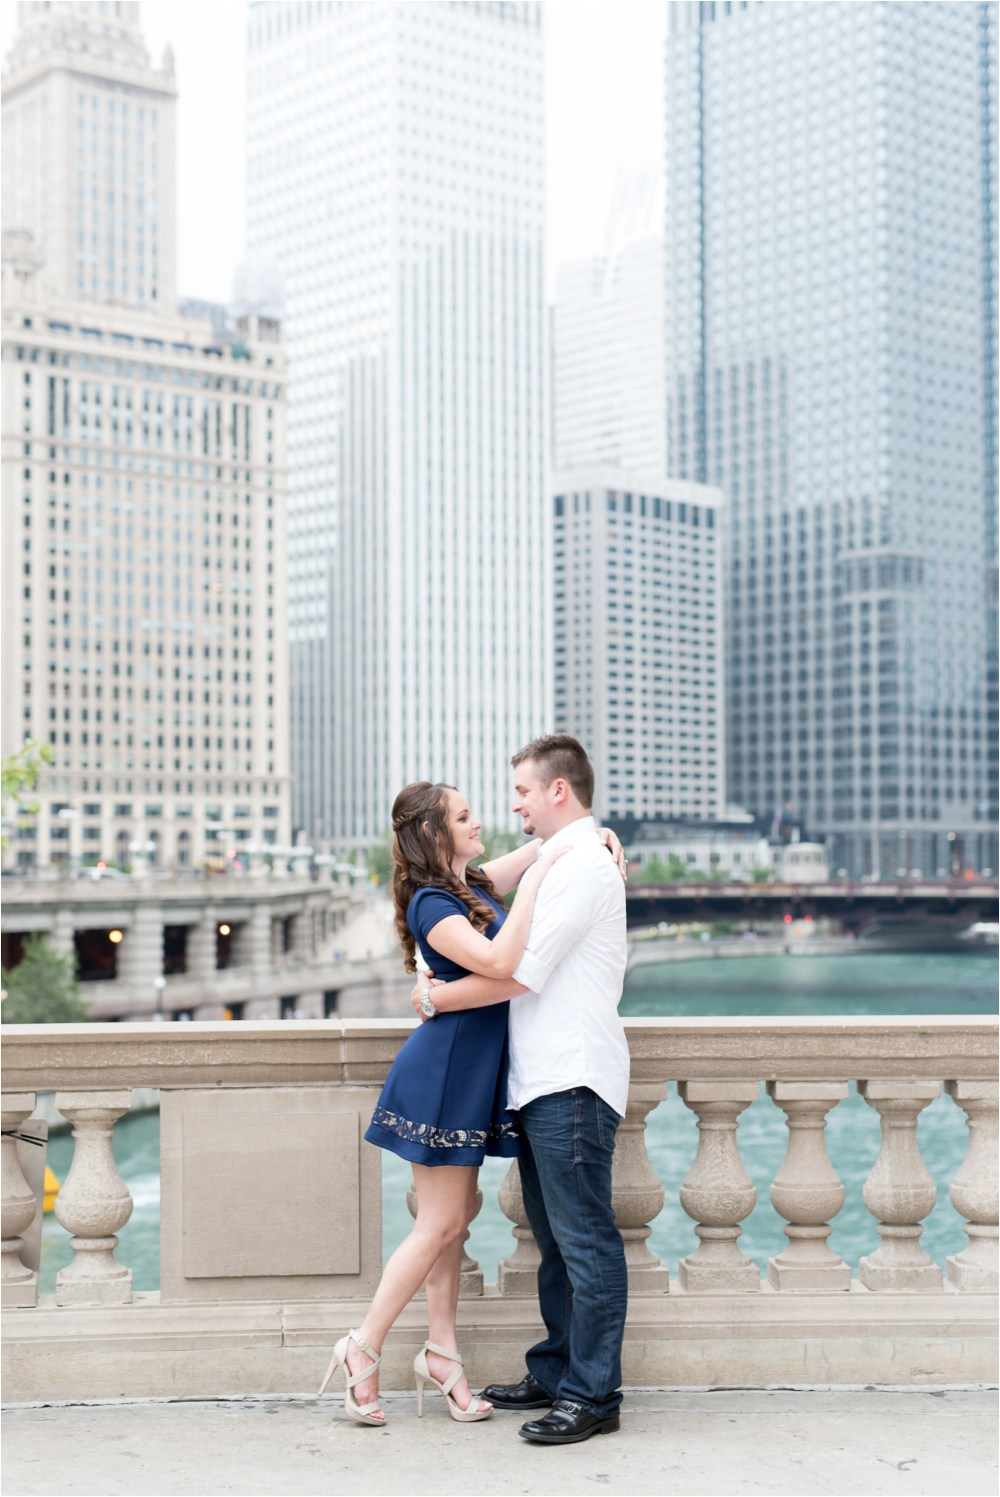 chicago-ilinois-michigna-ave-city-downtown-engagement-photo-7.jpg